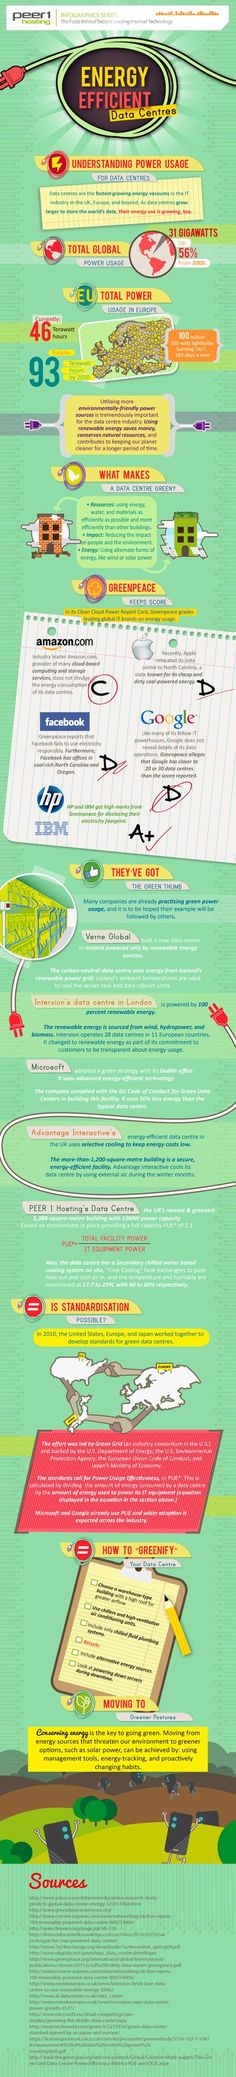 INFOGRAPHIC: How to Greenify Data Centers